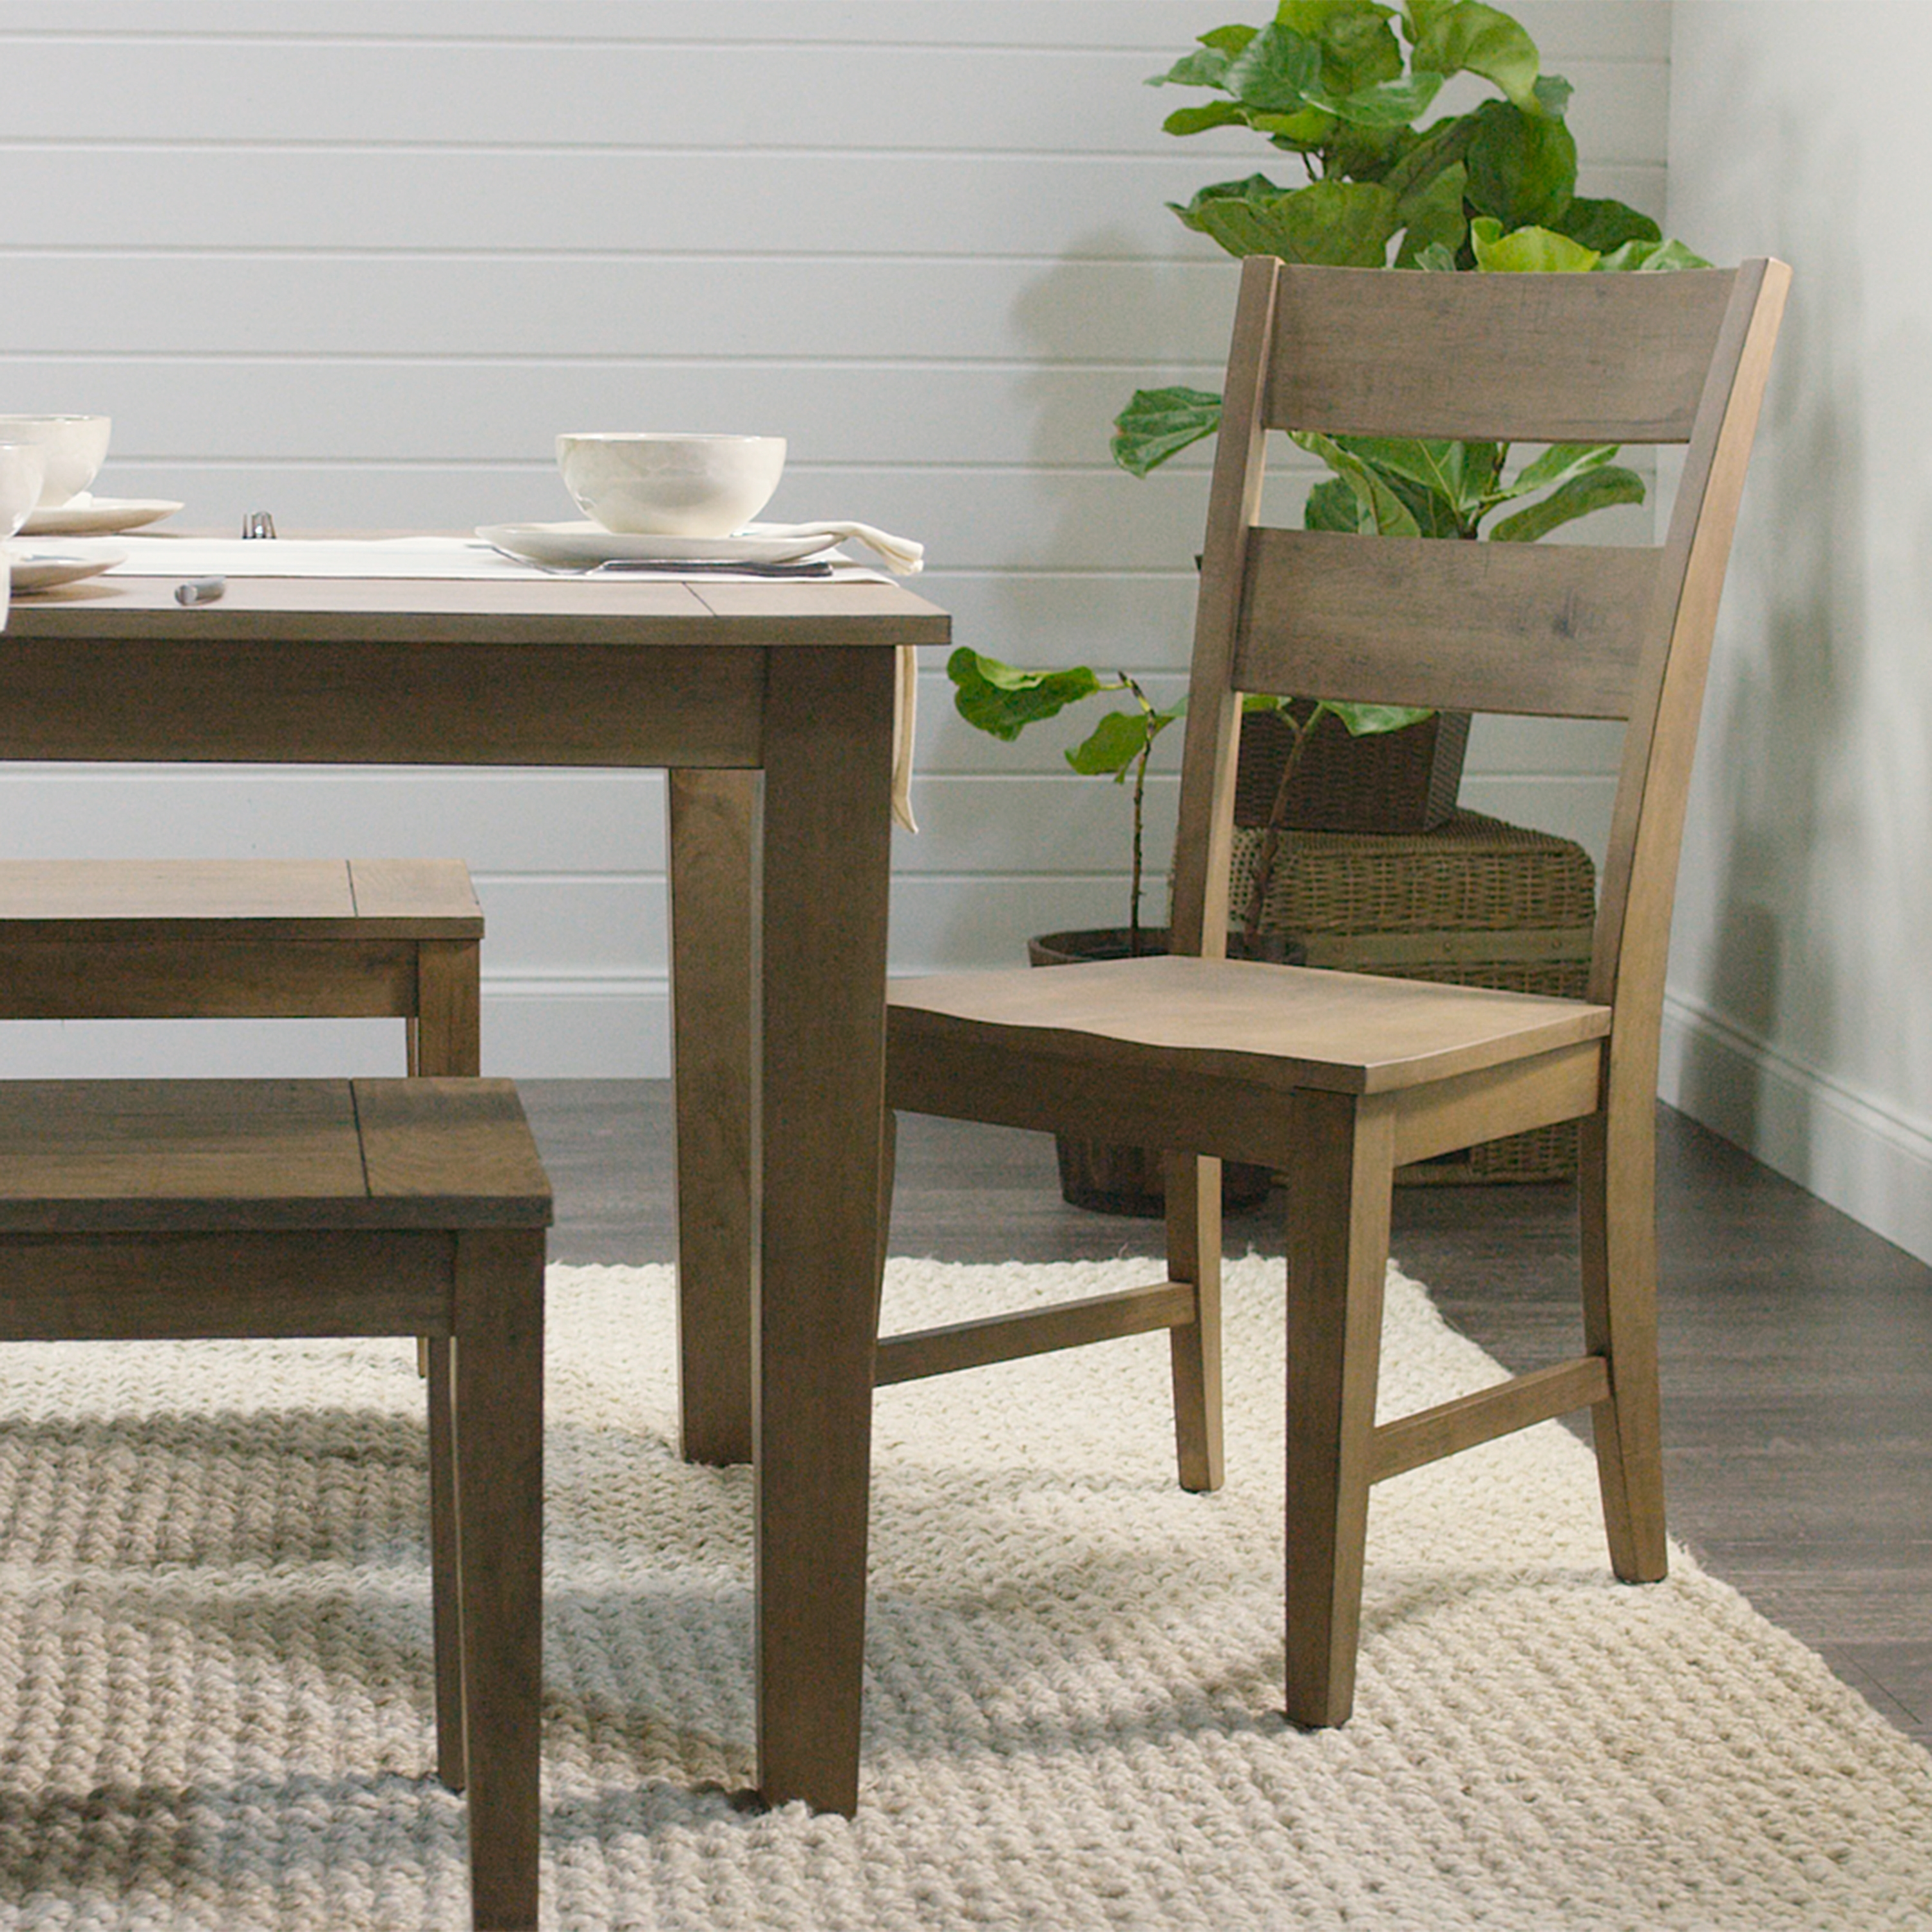 Distressed Wood Harrow Dining Chairs Set Of 2 World Market Including Within Most Popular Market Dining Tables (Image 8 of 20)